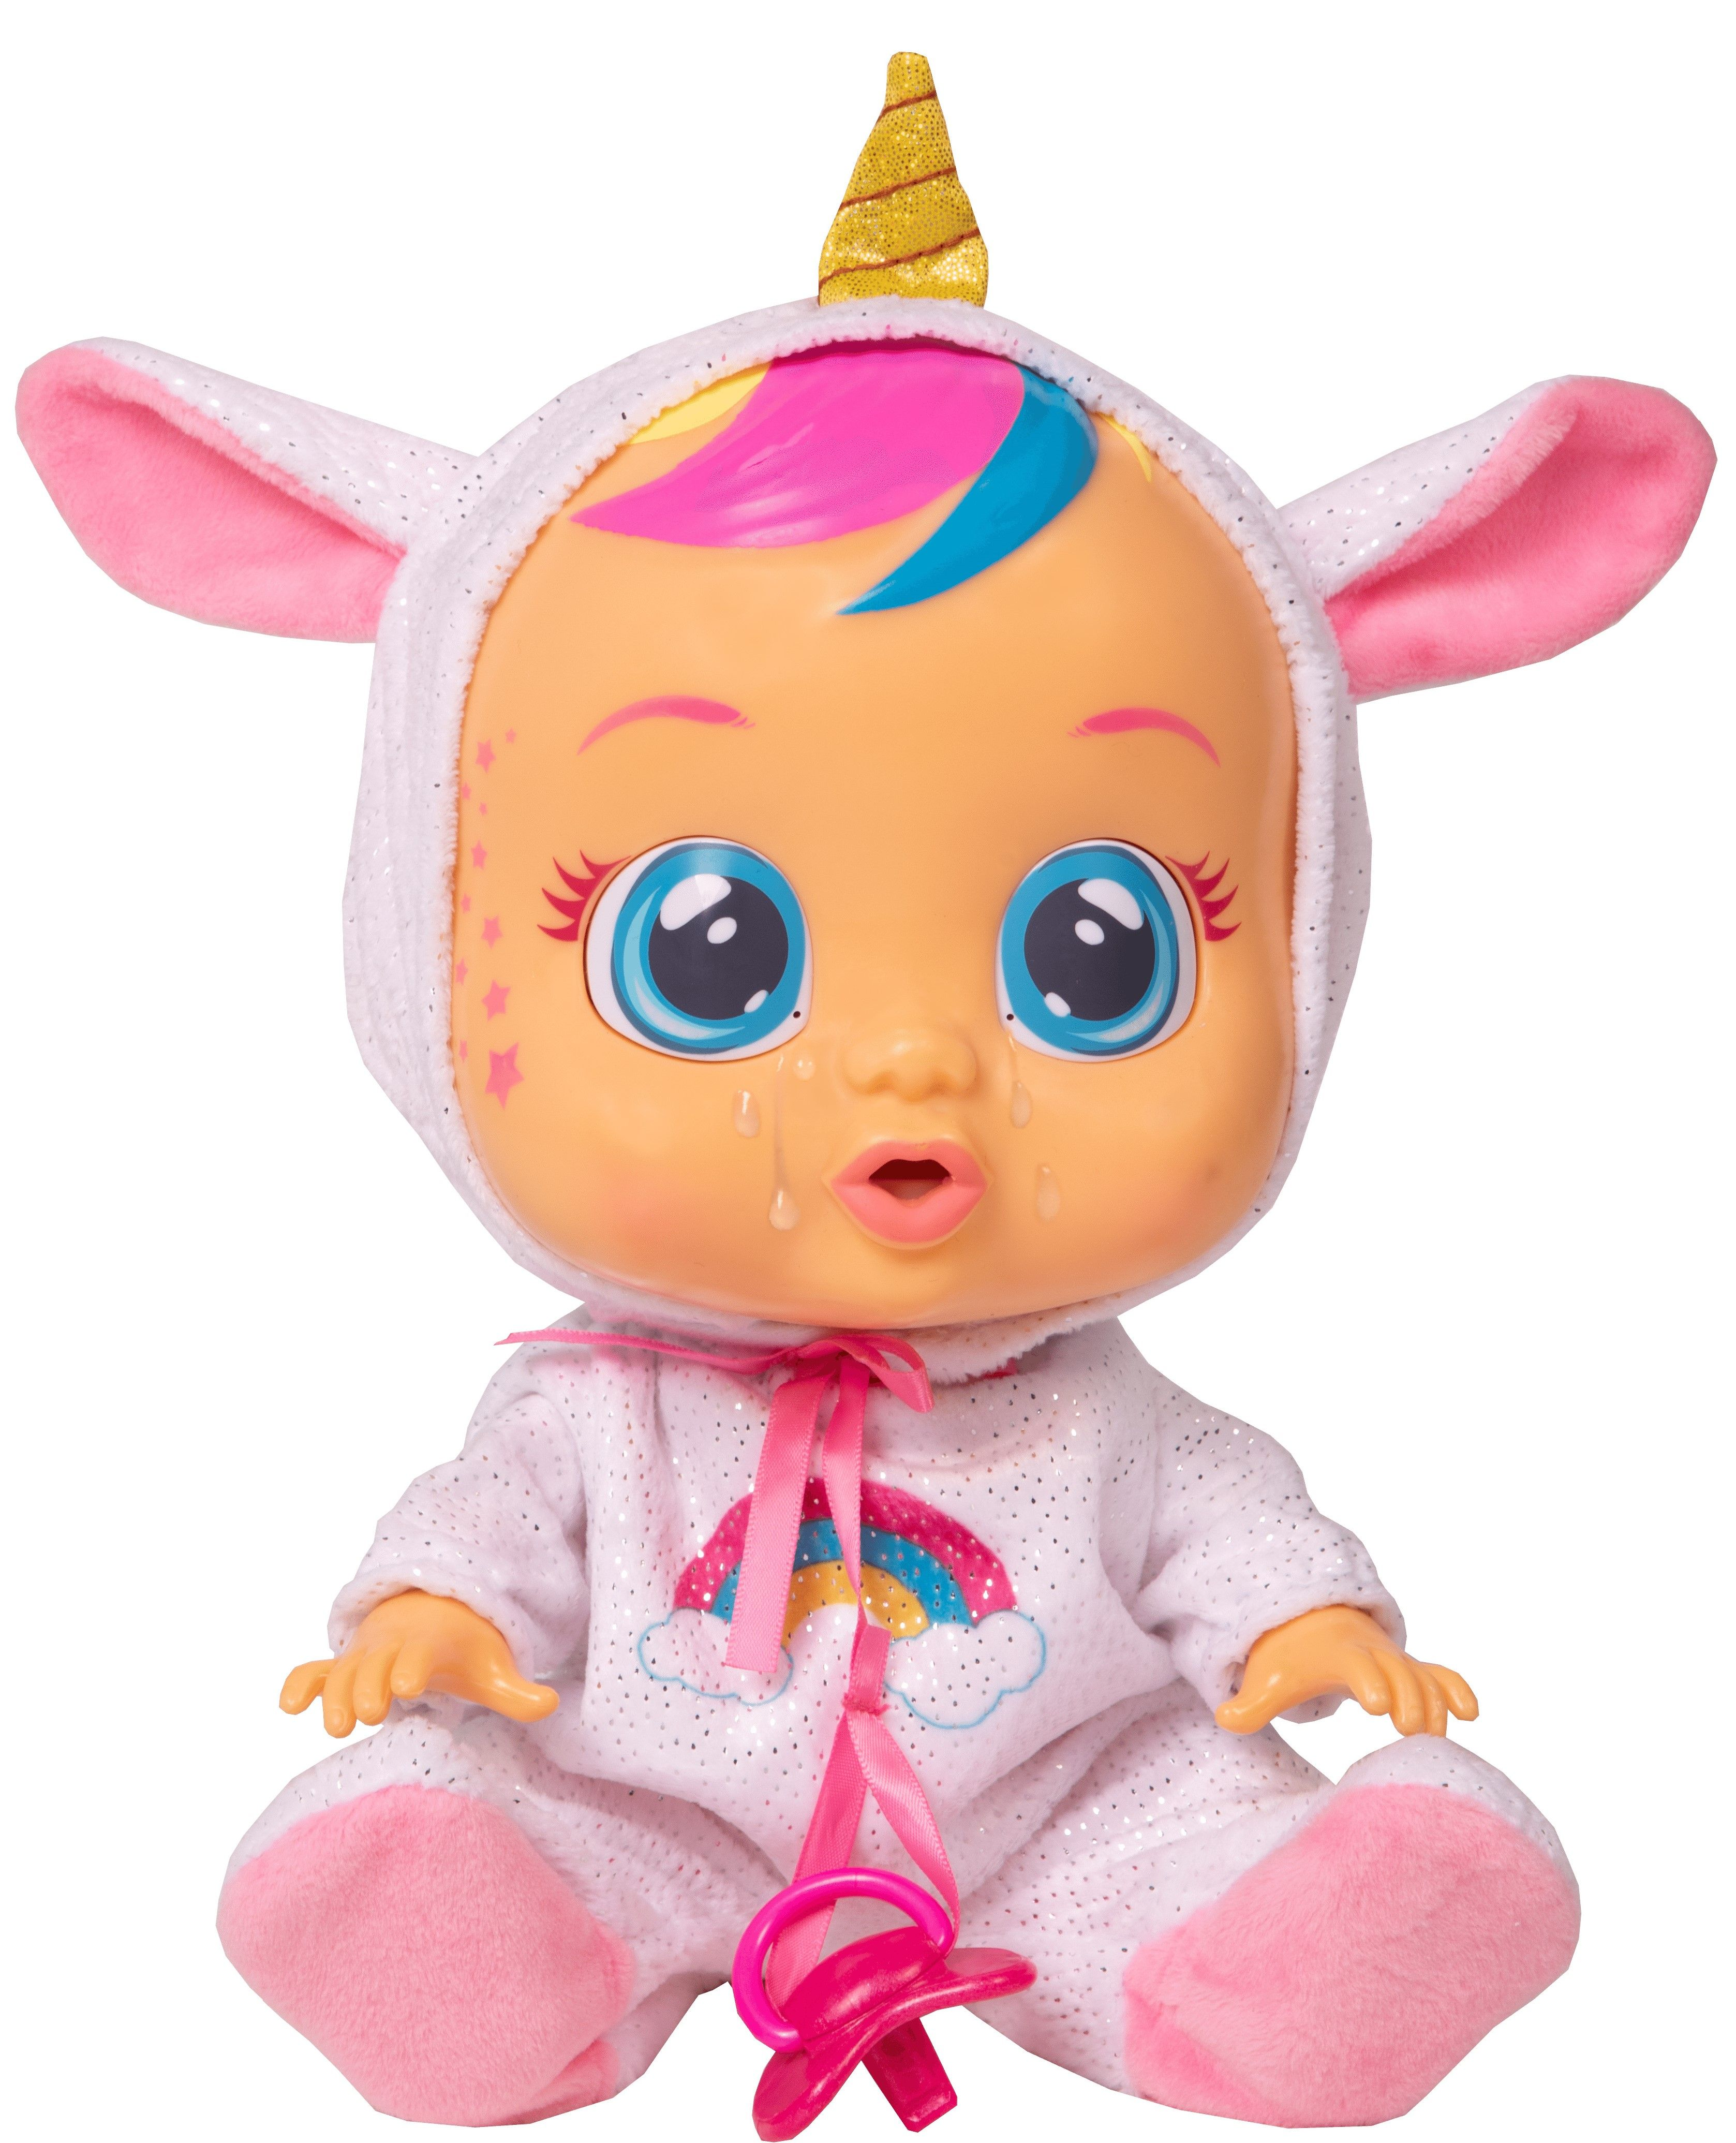 Cry Babies Dreamy Baby Doll Walmart Exclusive Walmart Com In 2020 Baby Dolls Baby Alive Cry Baby